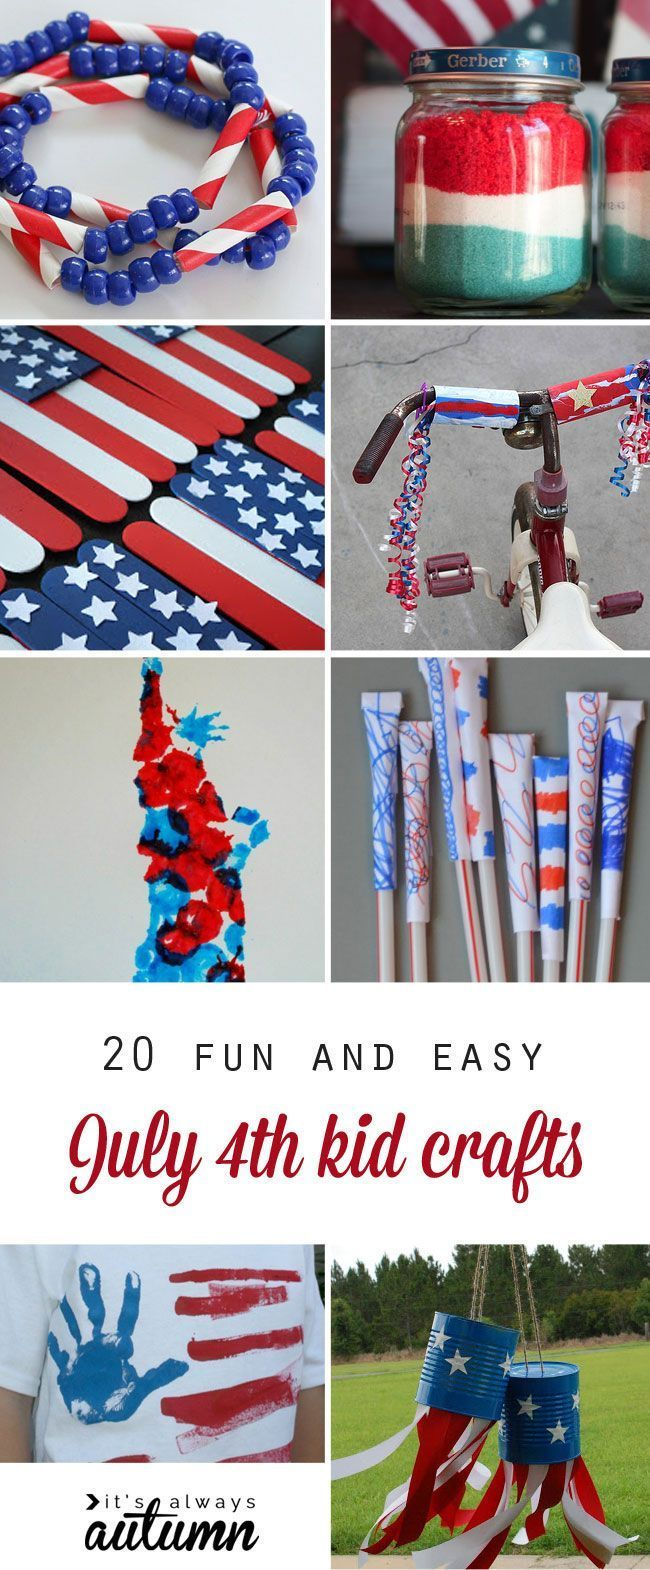 358 best images about kids 4th of july activities on pinterest crafts memorial day and flags. Black Bedroom Furniture Sets. Home Design Ideas